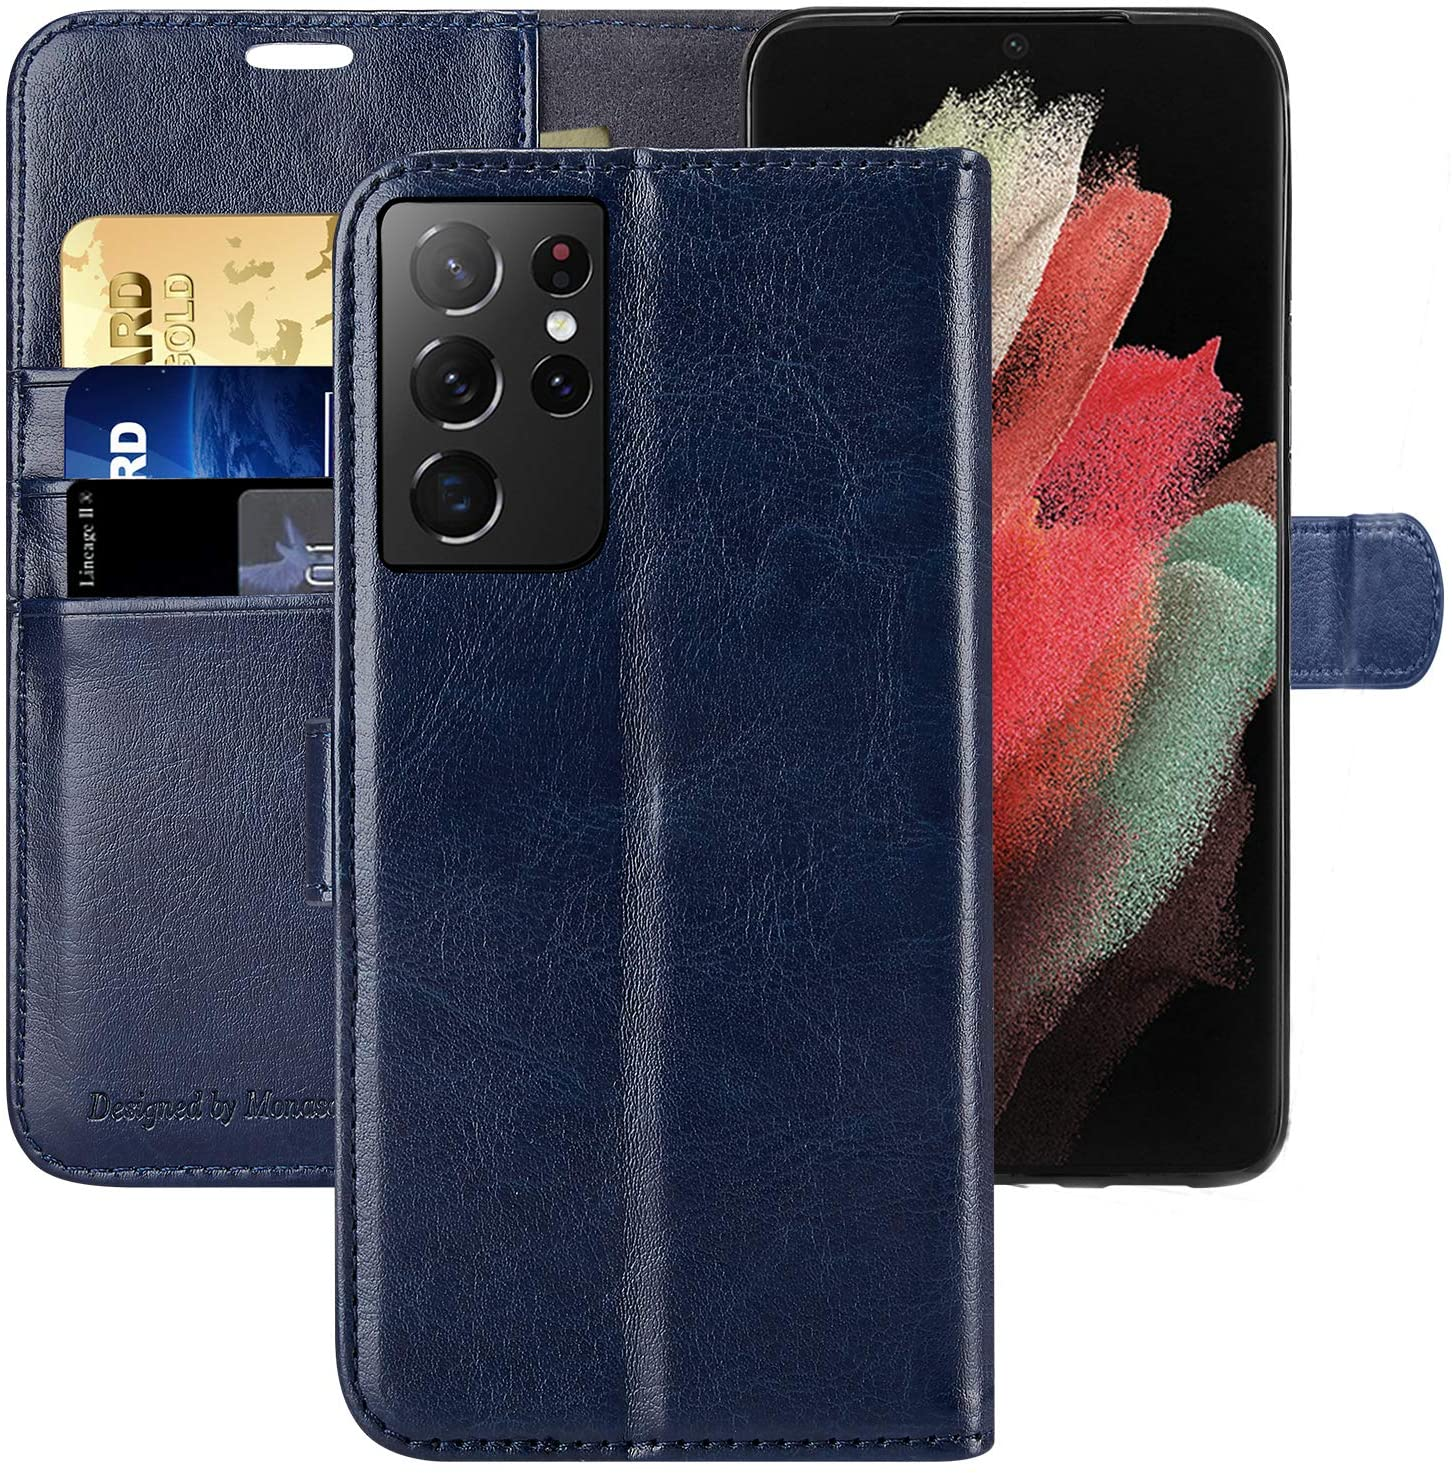 Galaxy S21 Ultra 5G Wallet Case, 6.8 inch,MONASAY [Included Screen Protector] Flip Folio Leather Cell Phone Cover with Credit Card Holder for Samsung Galaxy S21 Ultra 5G